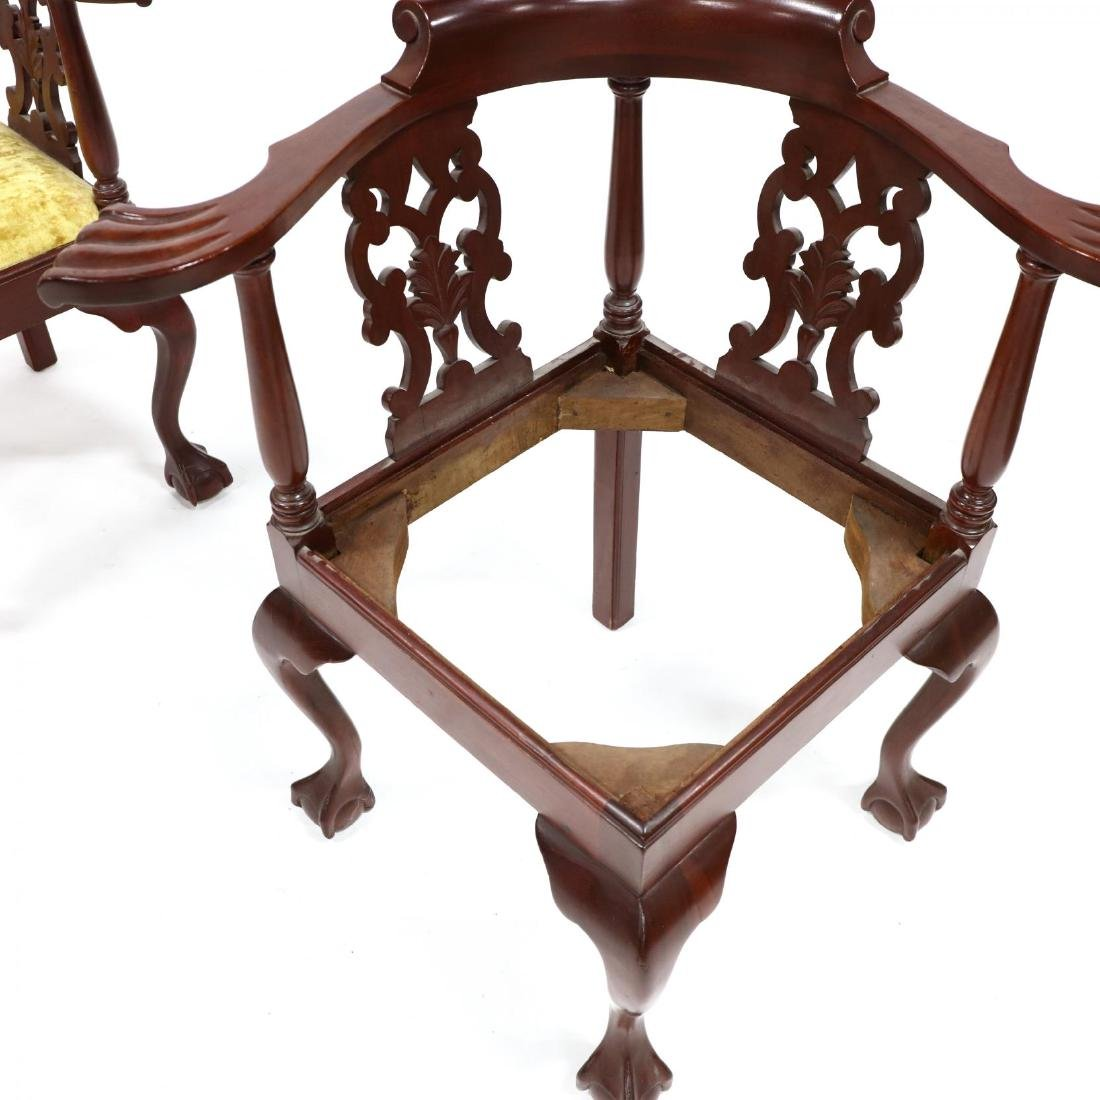 Pair of Chippendale Style Carved Mahogany Corner Chairs - 4